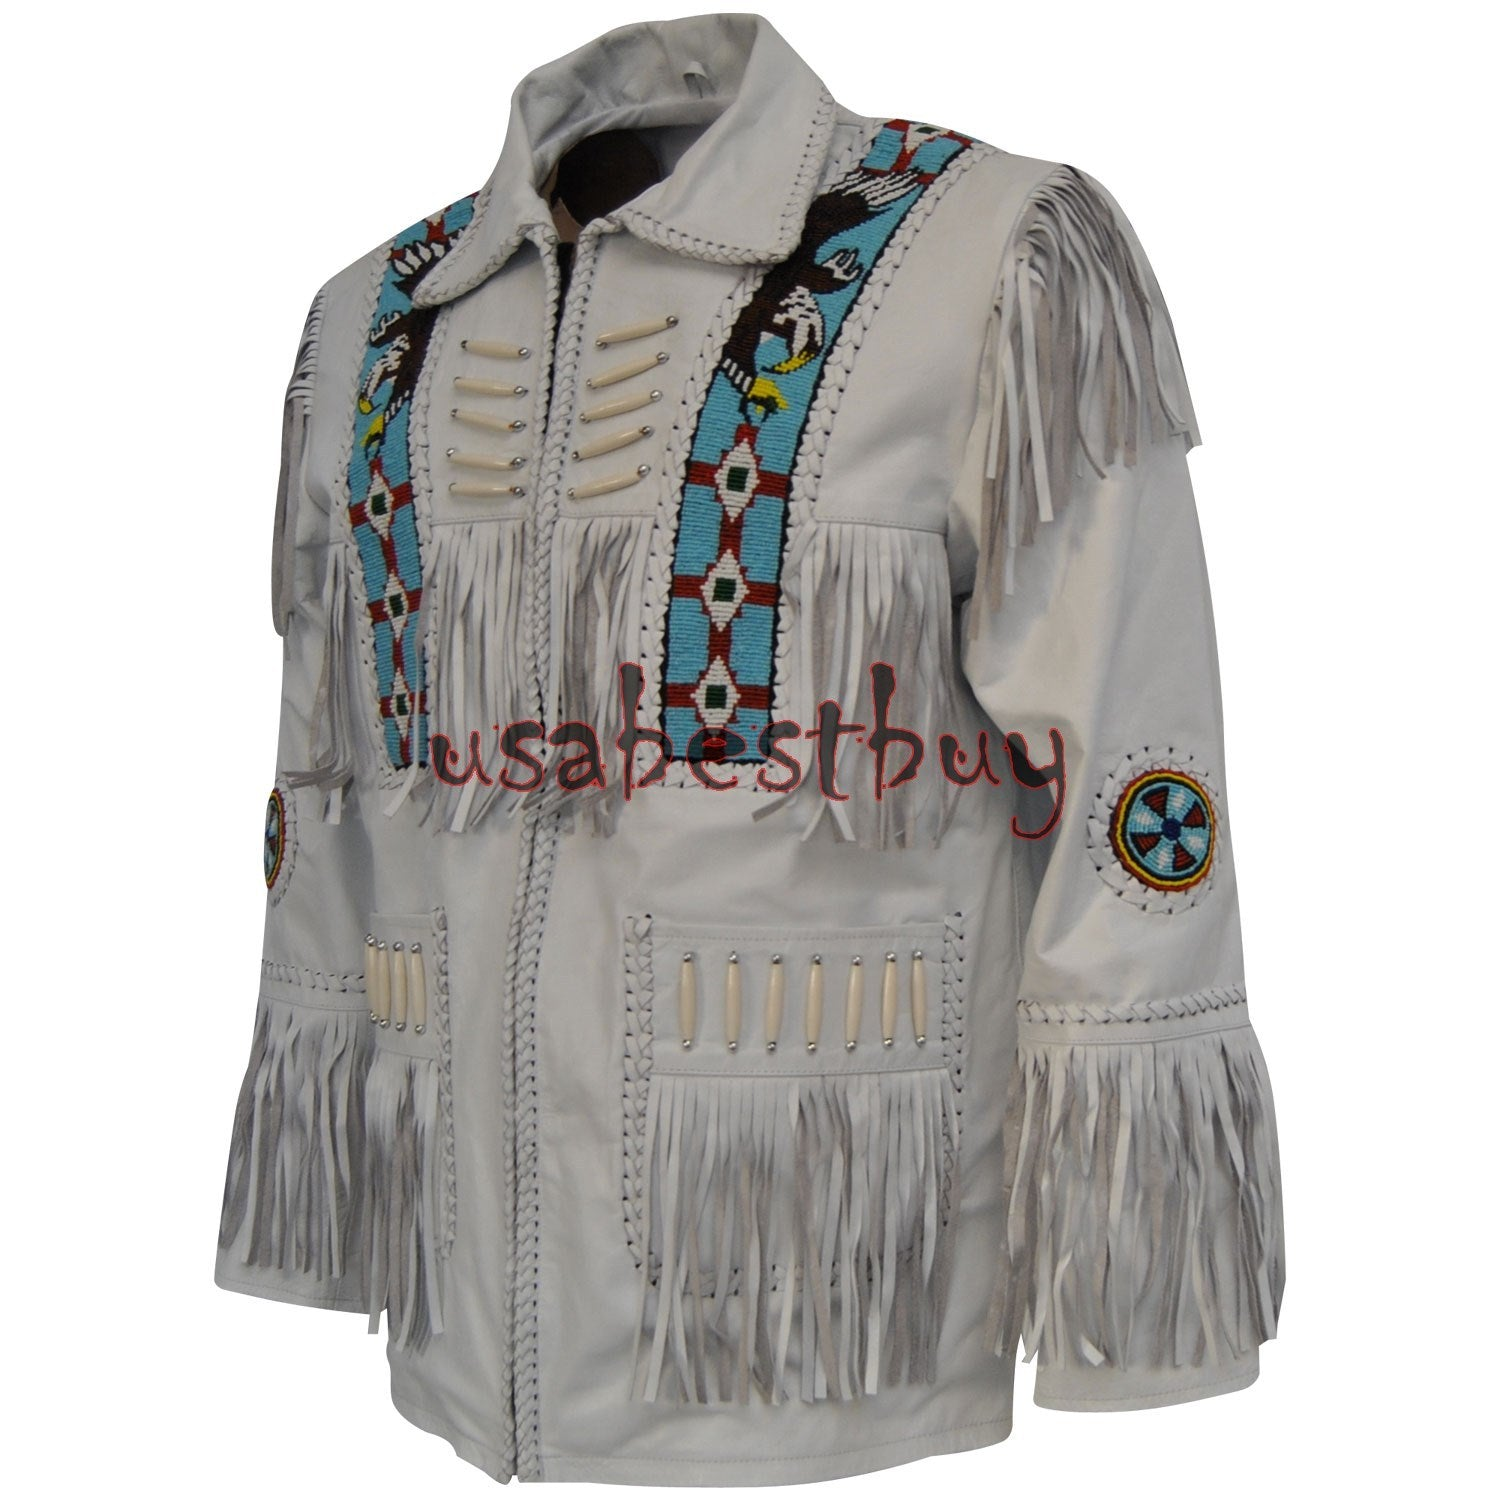 Handmade Men White Leather Western Cowboy Jacket With Fringe, Bone and Beads